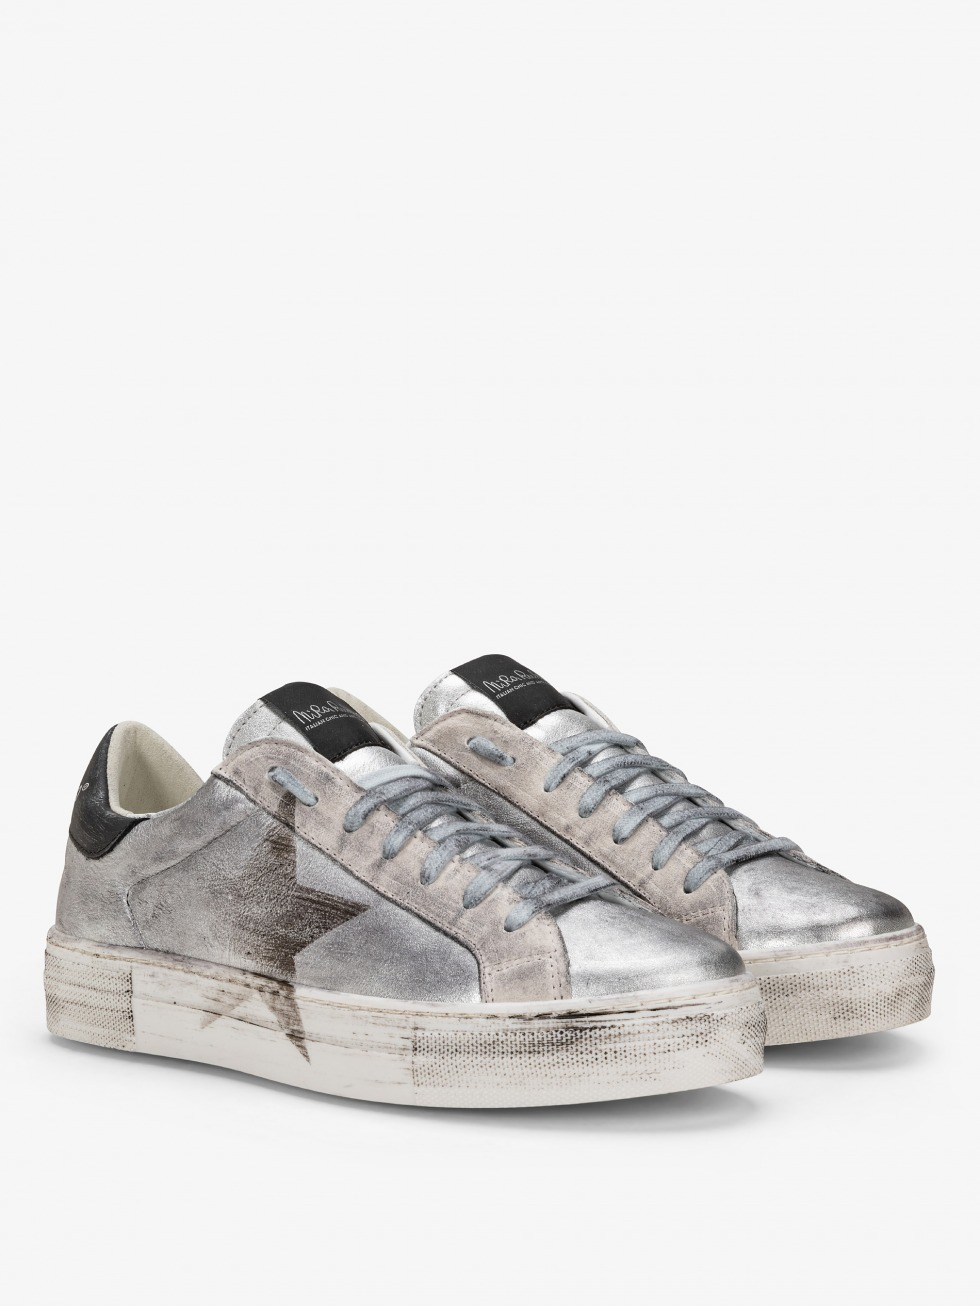 Vintage Martini Sneakers - Silver Star